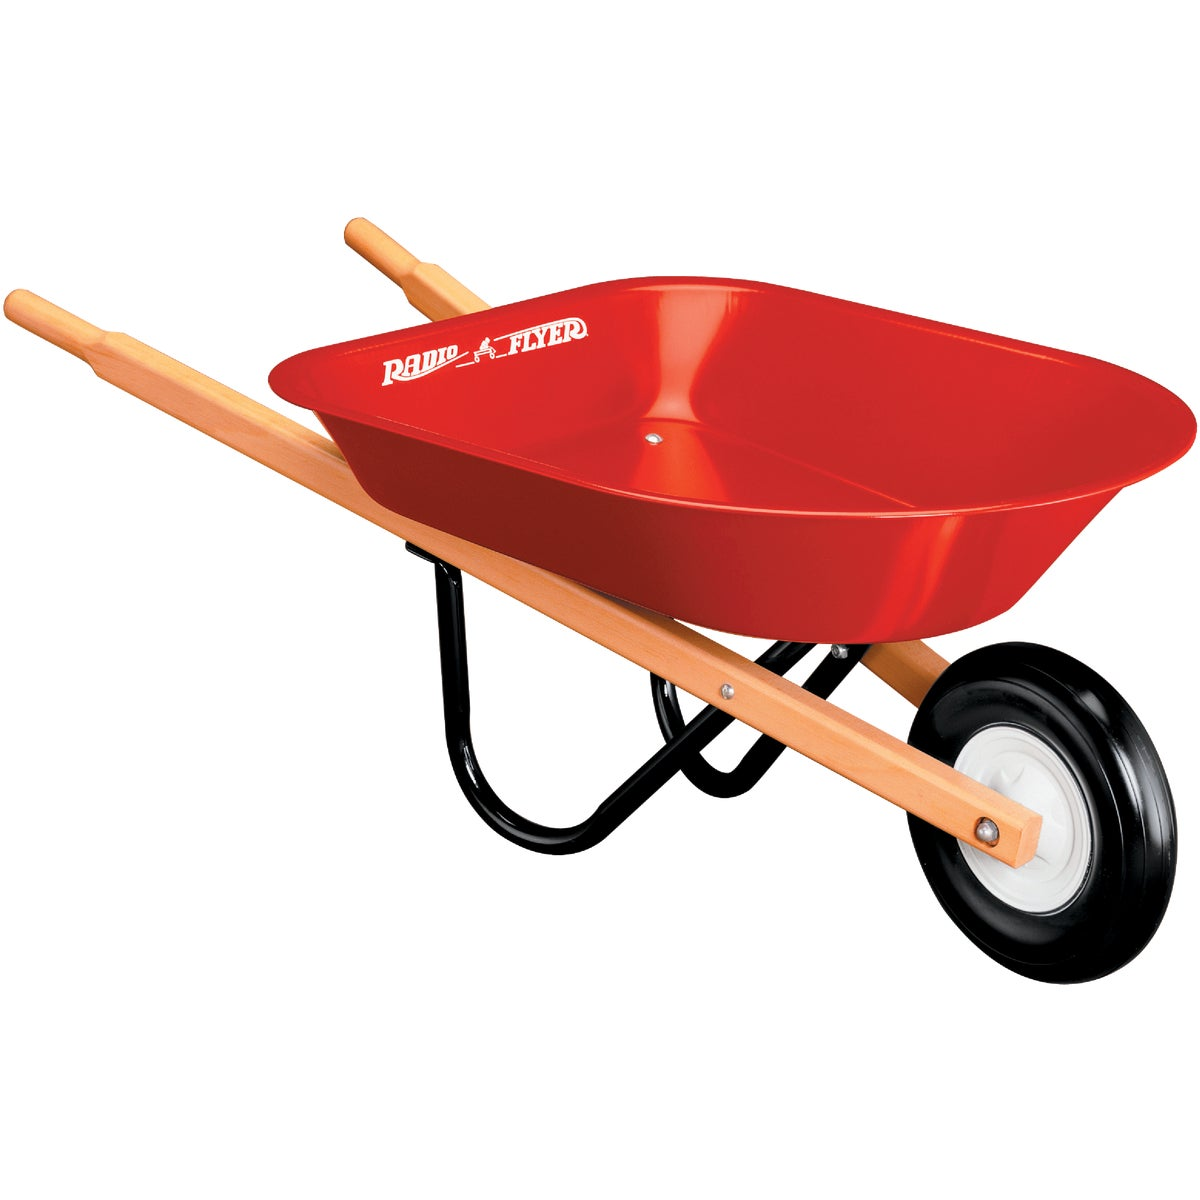 KIDS WHEELBARROW - 40 by Radio Flyer